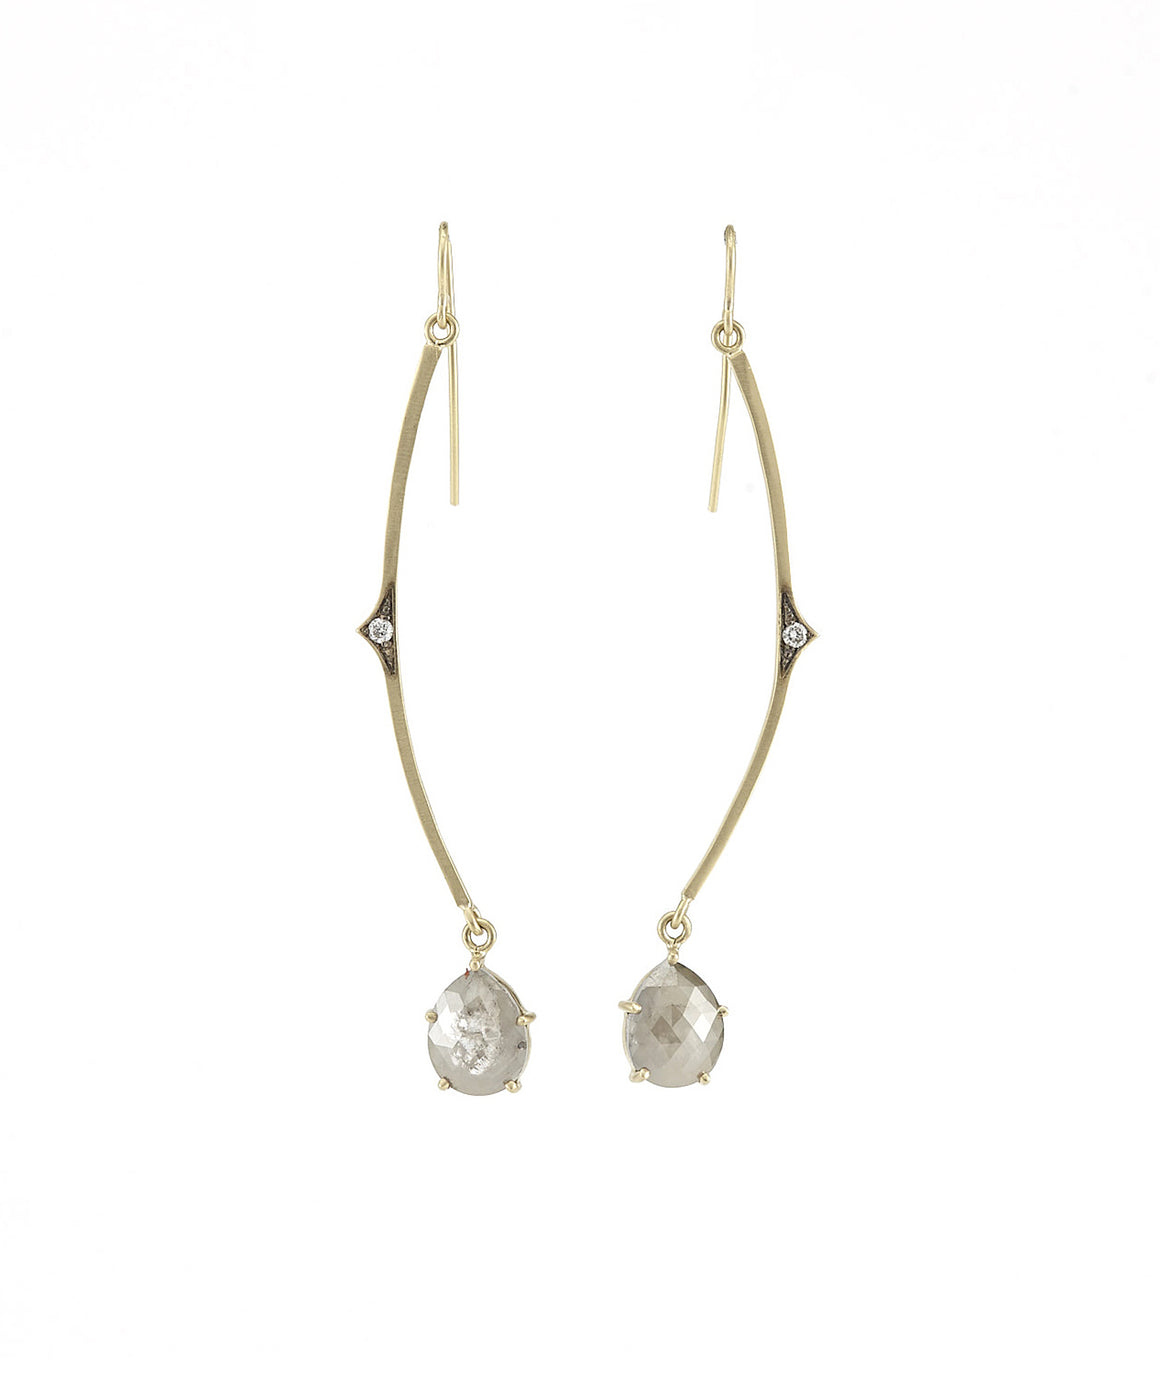 Curved earrings with rough diamonds